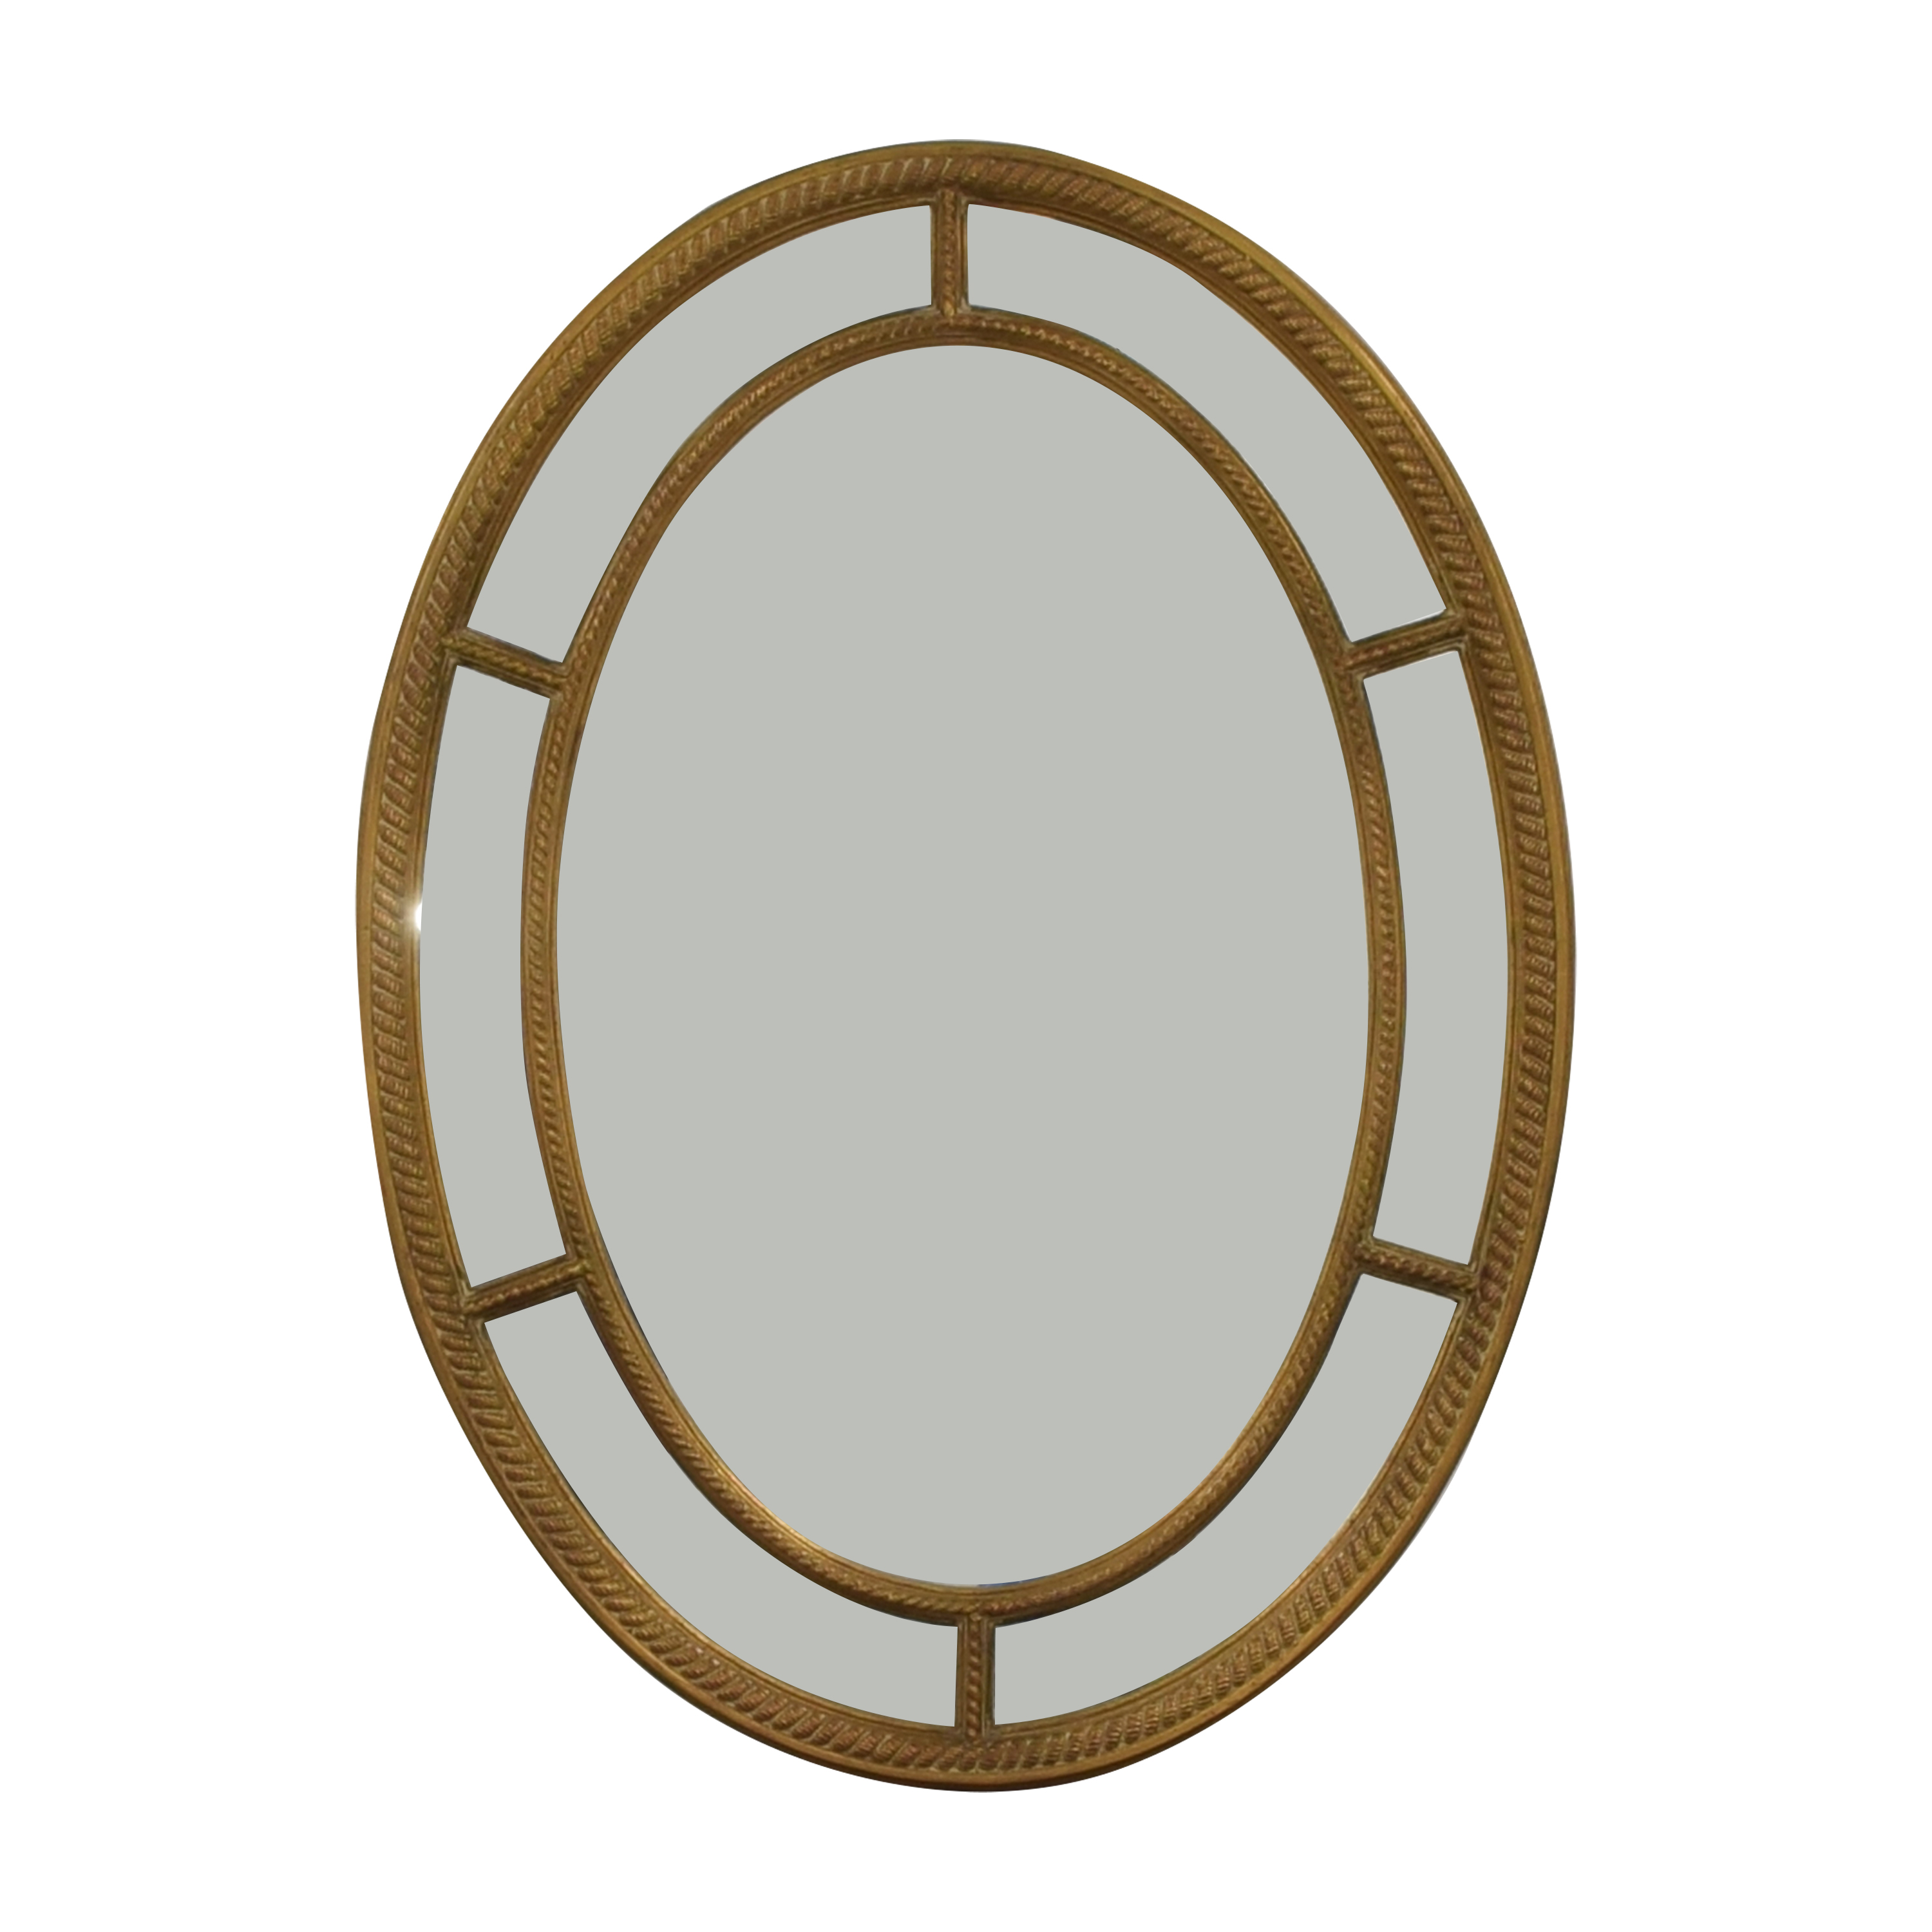 Carvers' Guild Carver's Guild Rope Oval Mirror used